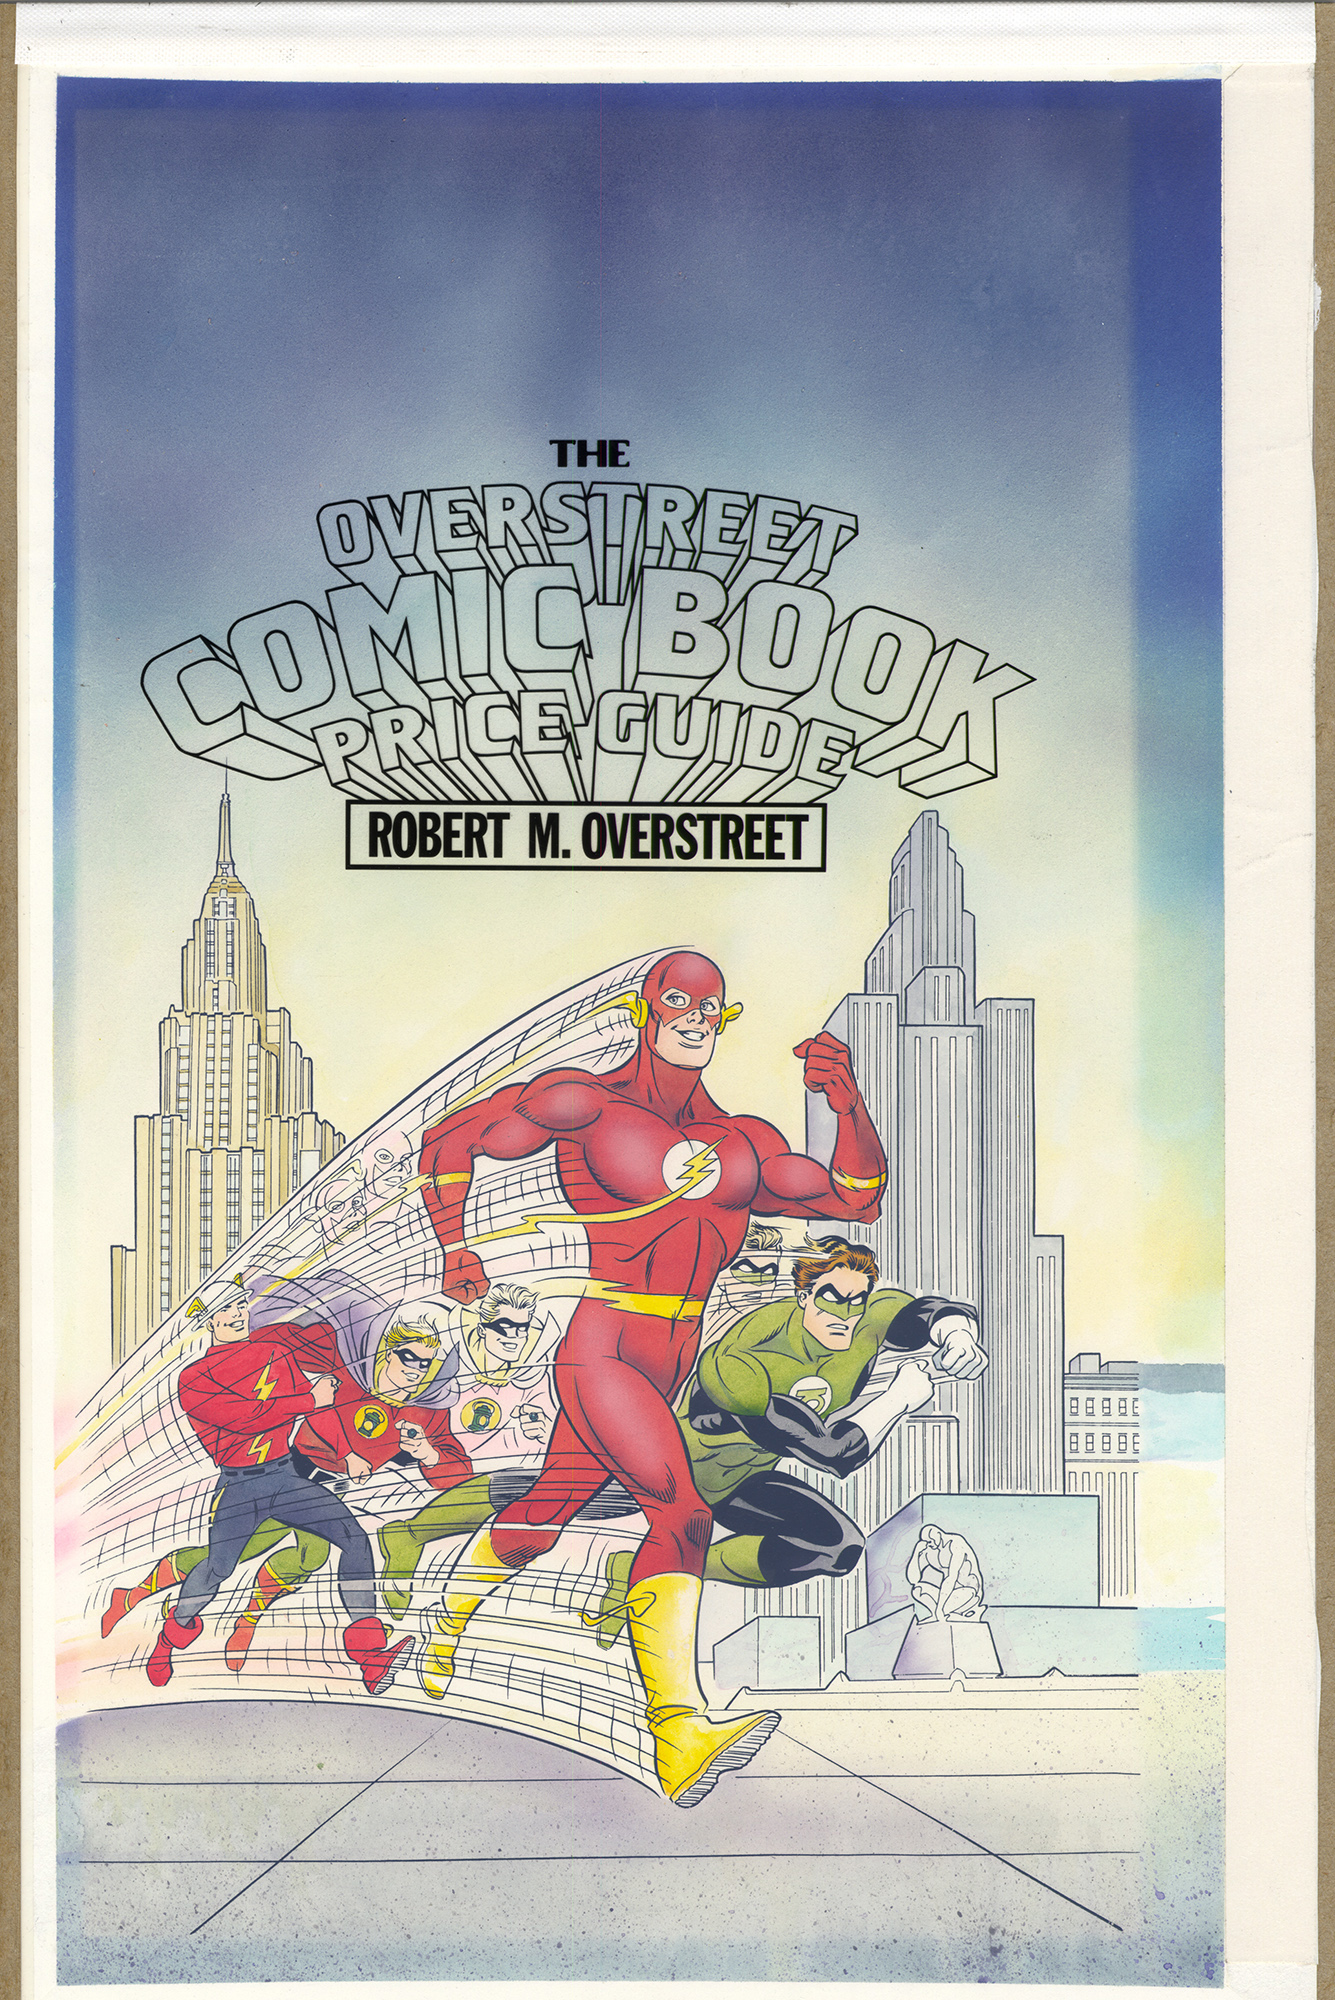 Overstreet Comic Book Price Guide 23rd Edition Cover